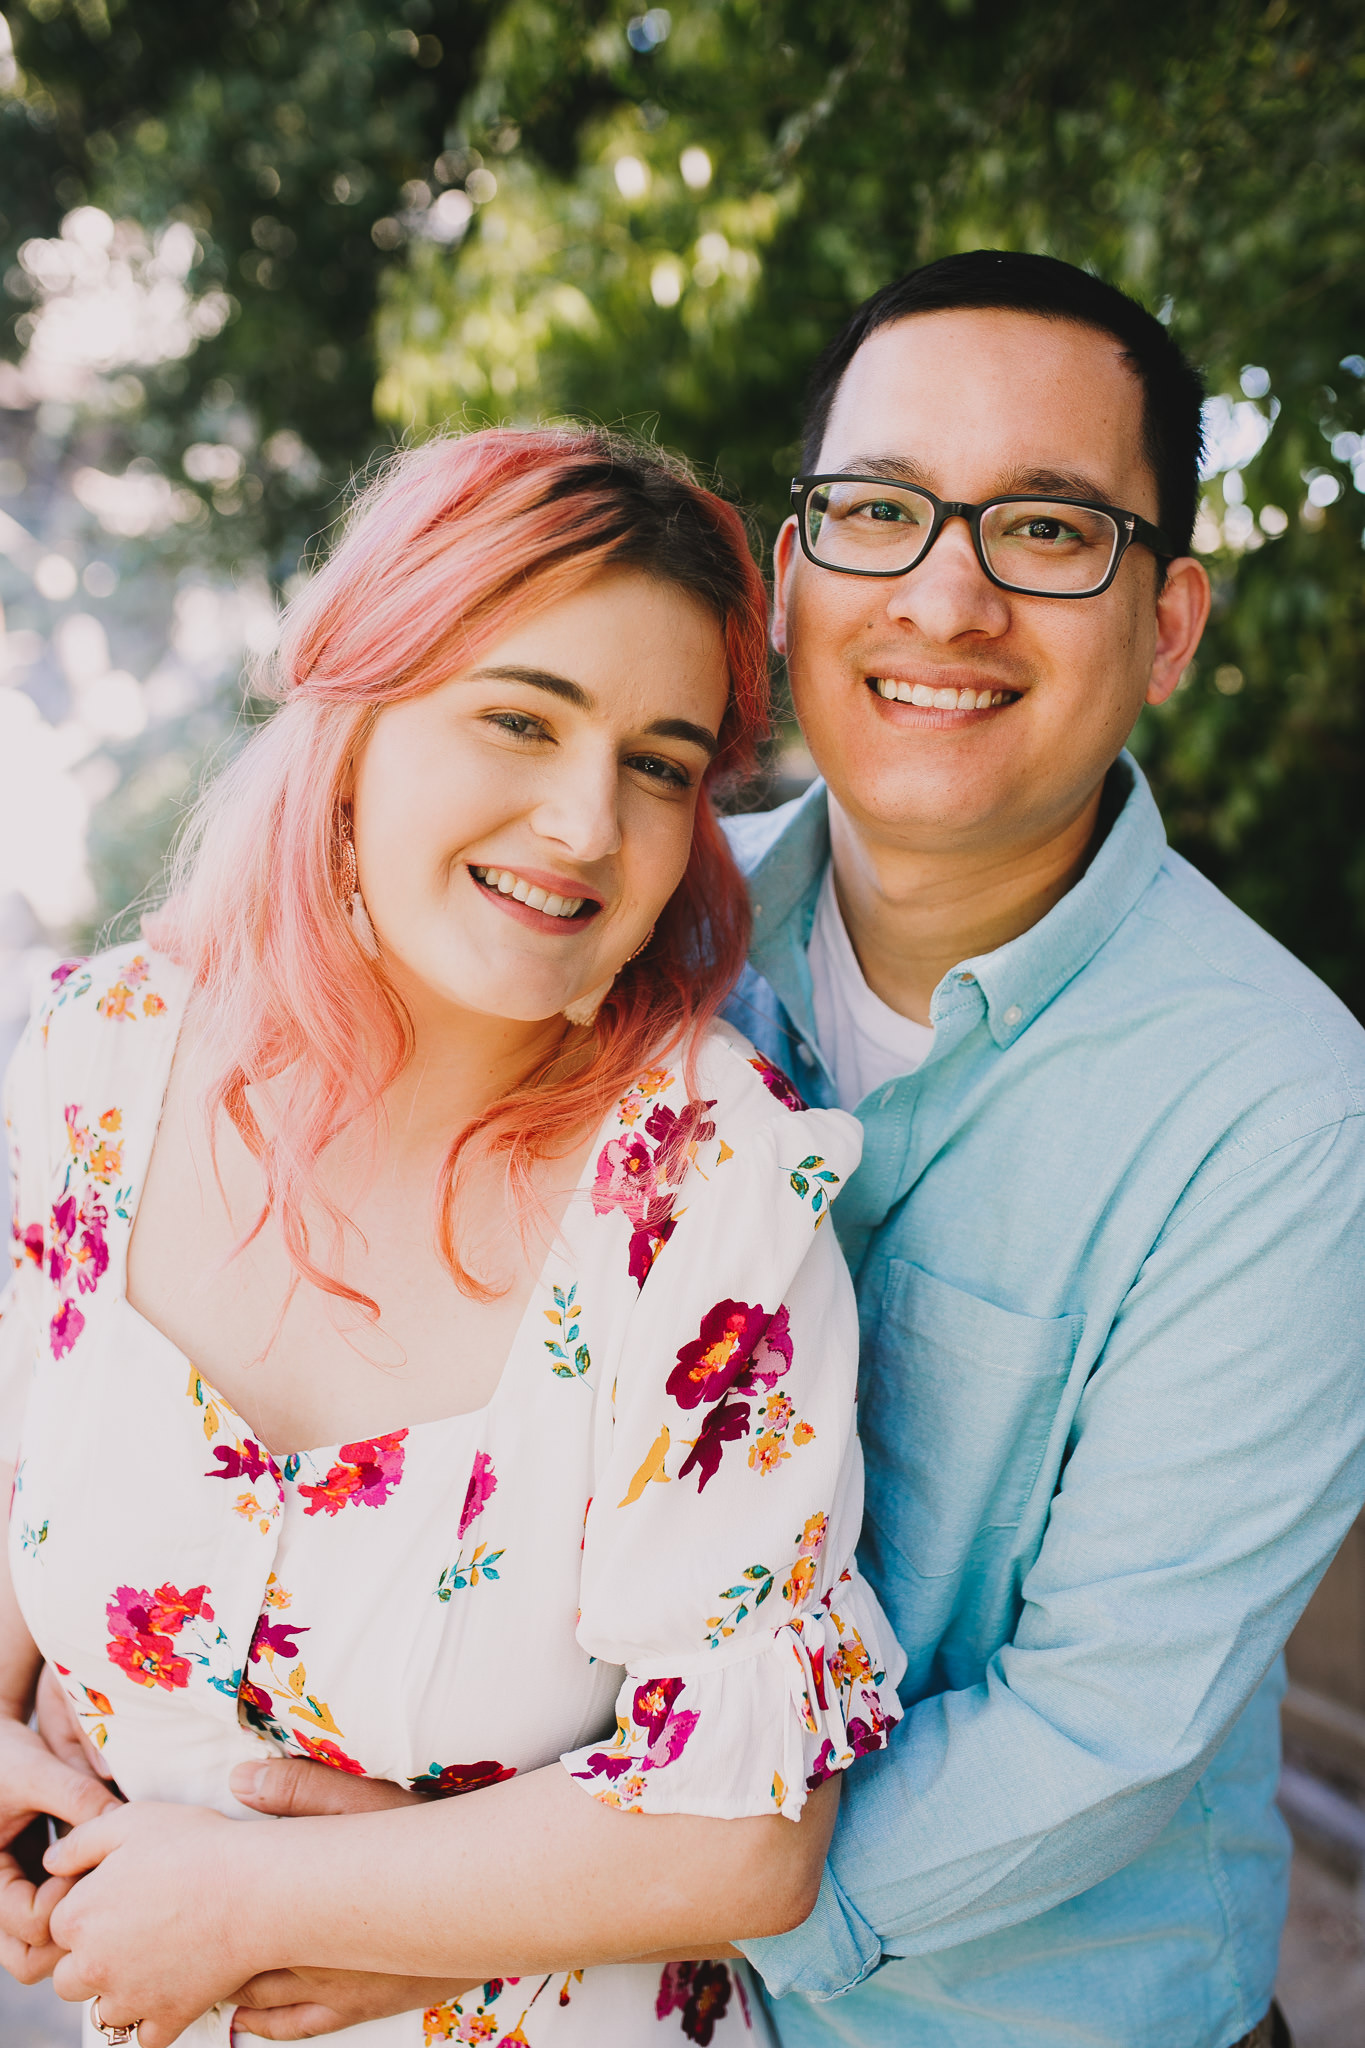 Archer Inspired Photography Disneyland Engagement Wedding Session Southern California Kayla and Kevin Lifestyle Documentary-42.jpg